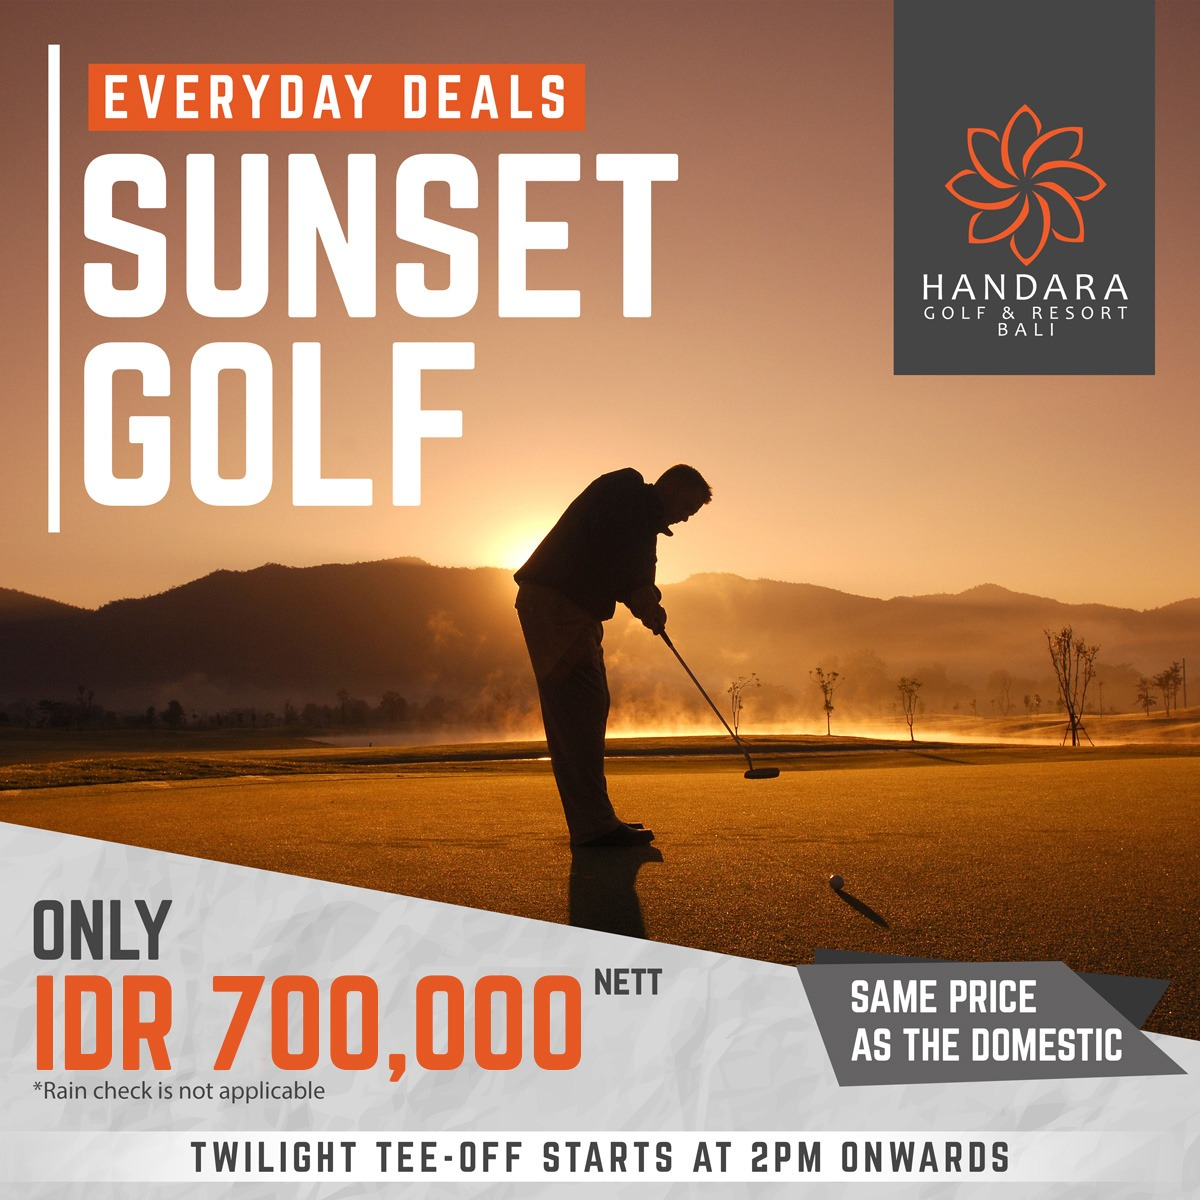 Sunset Golf All Year Deal